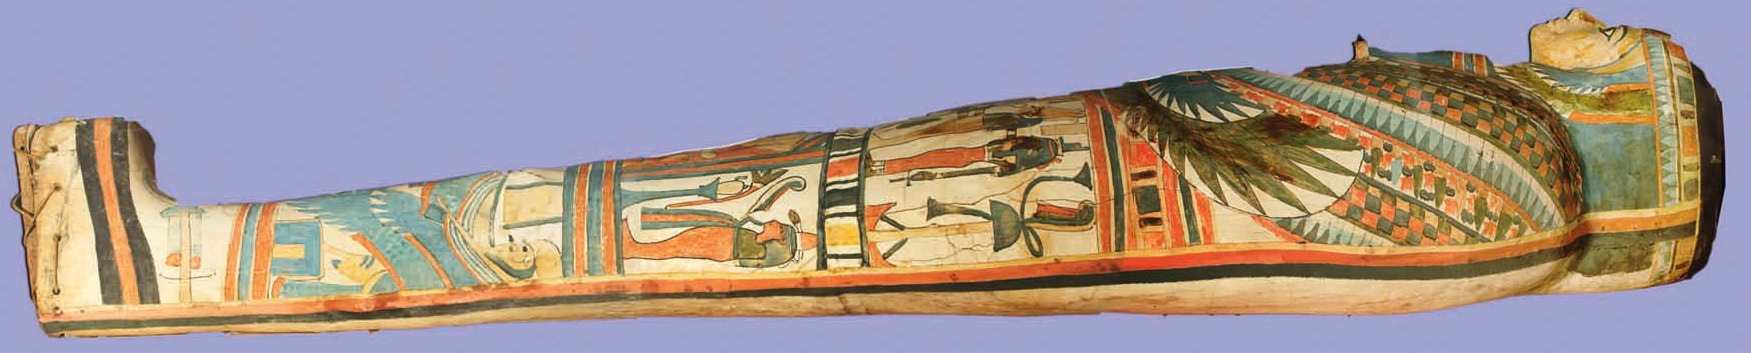 Unwrapping The Identity Of The Macclesfield Mummy